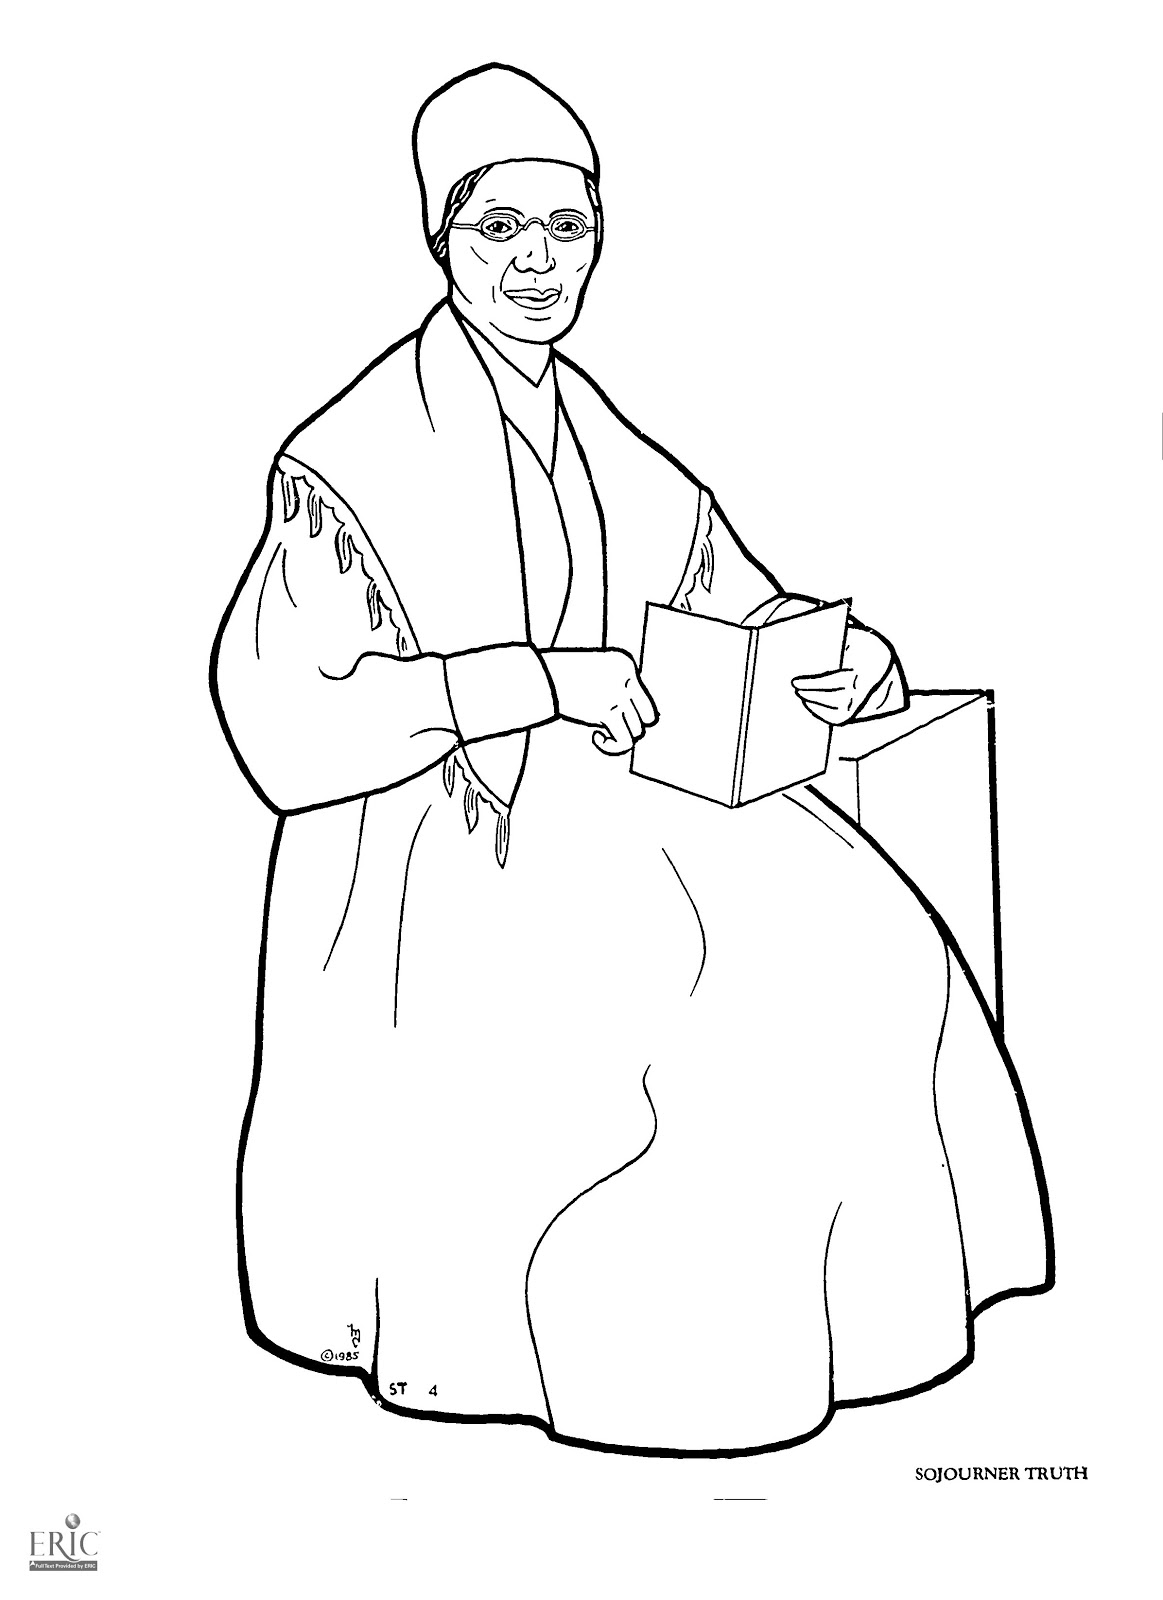 Sojourner Truth Coloring Page At Getcolorings